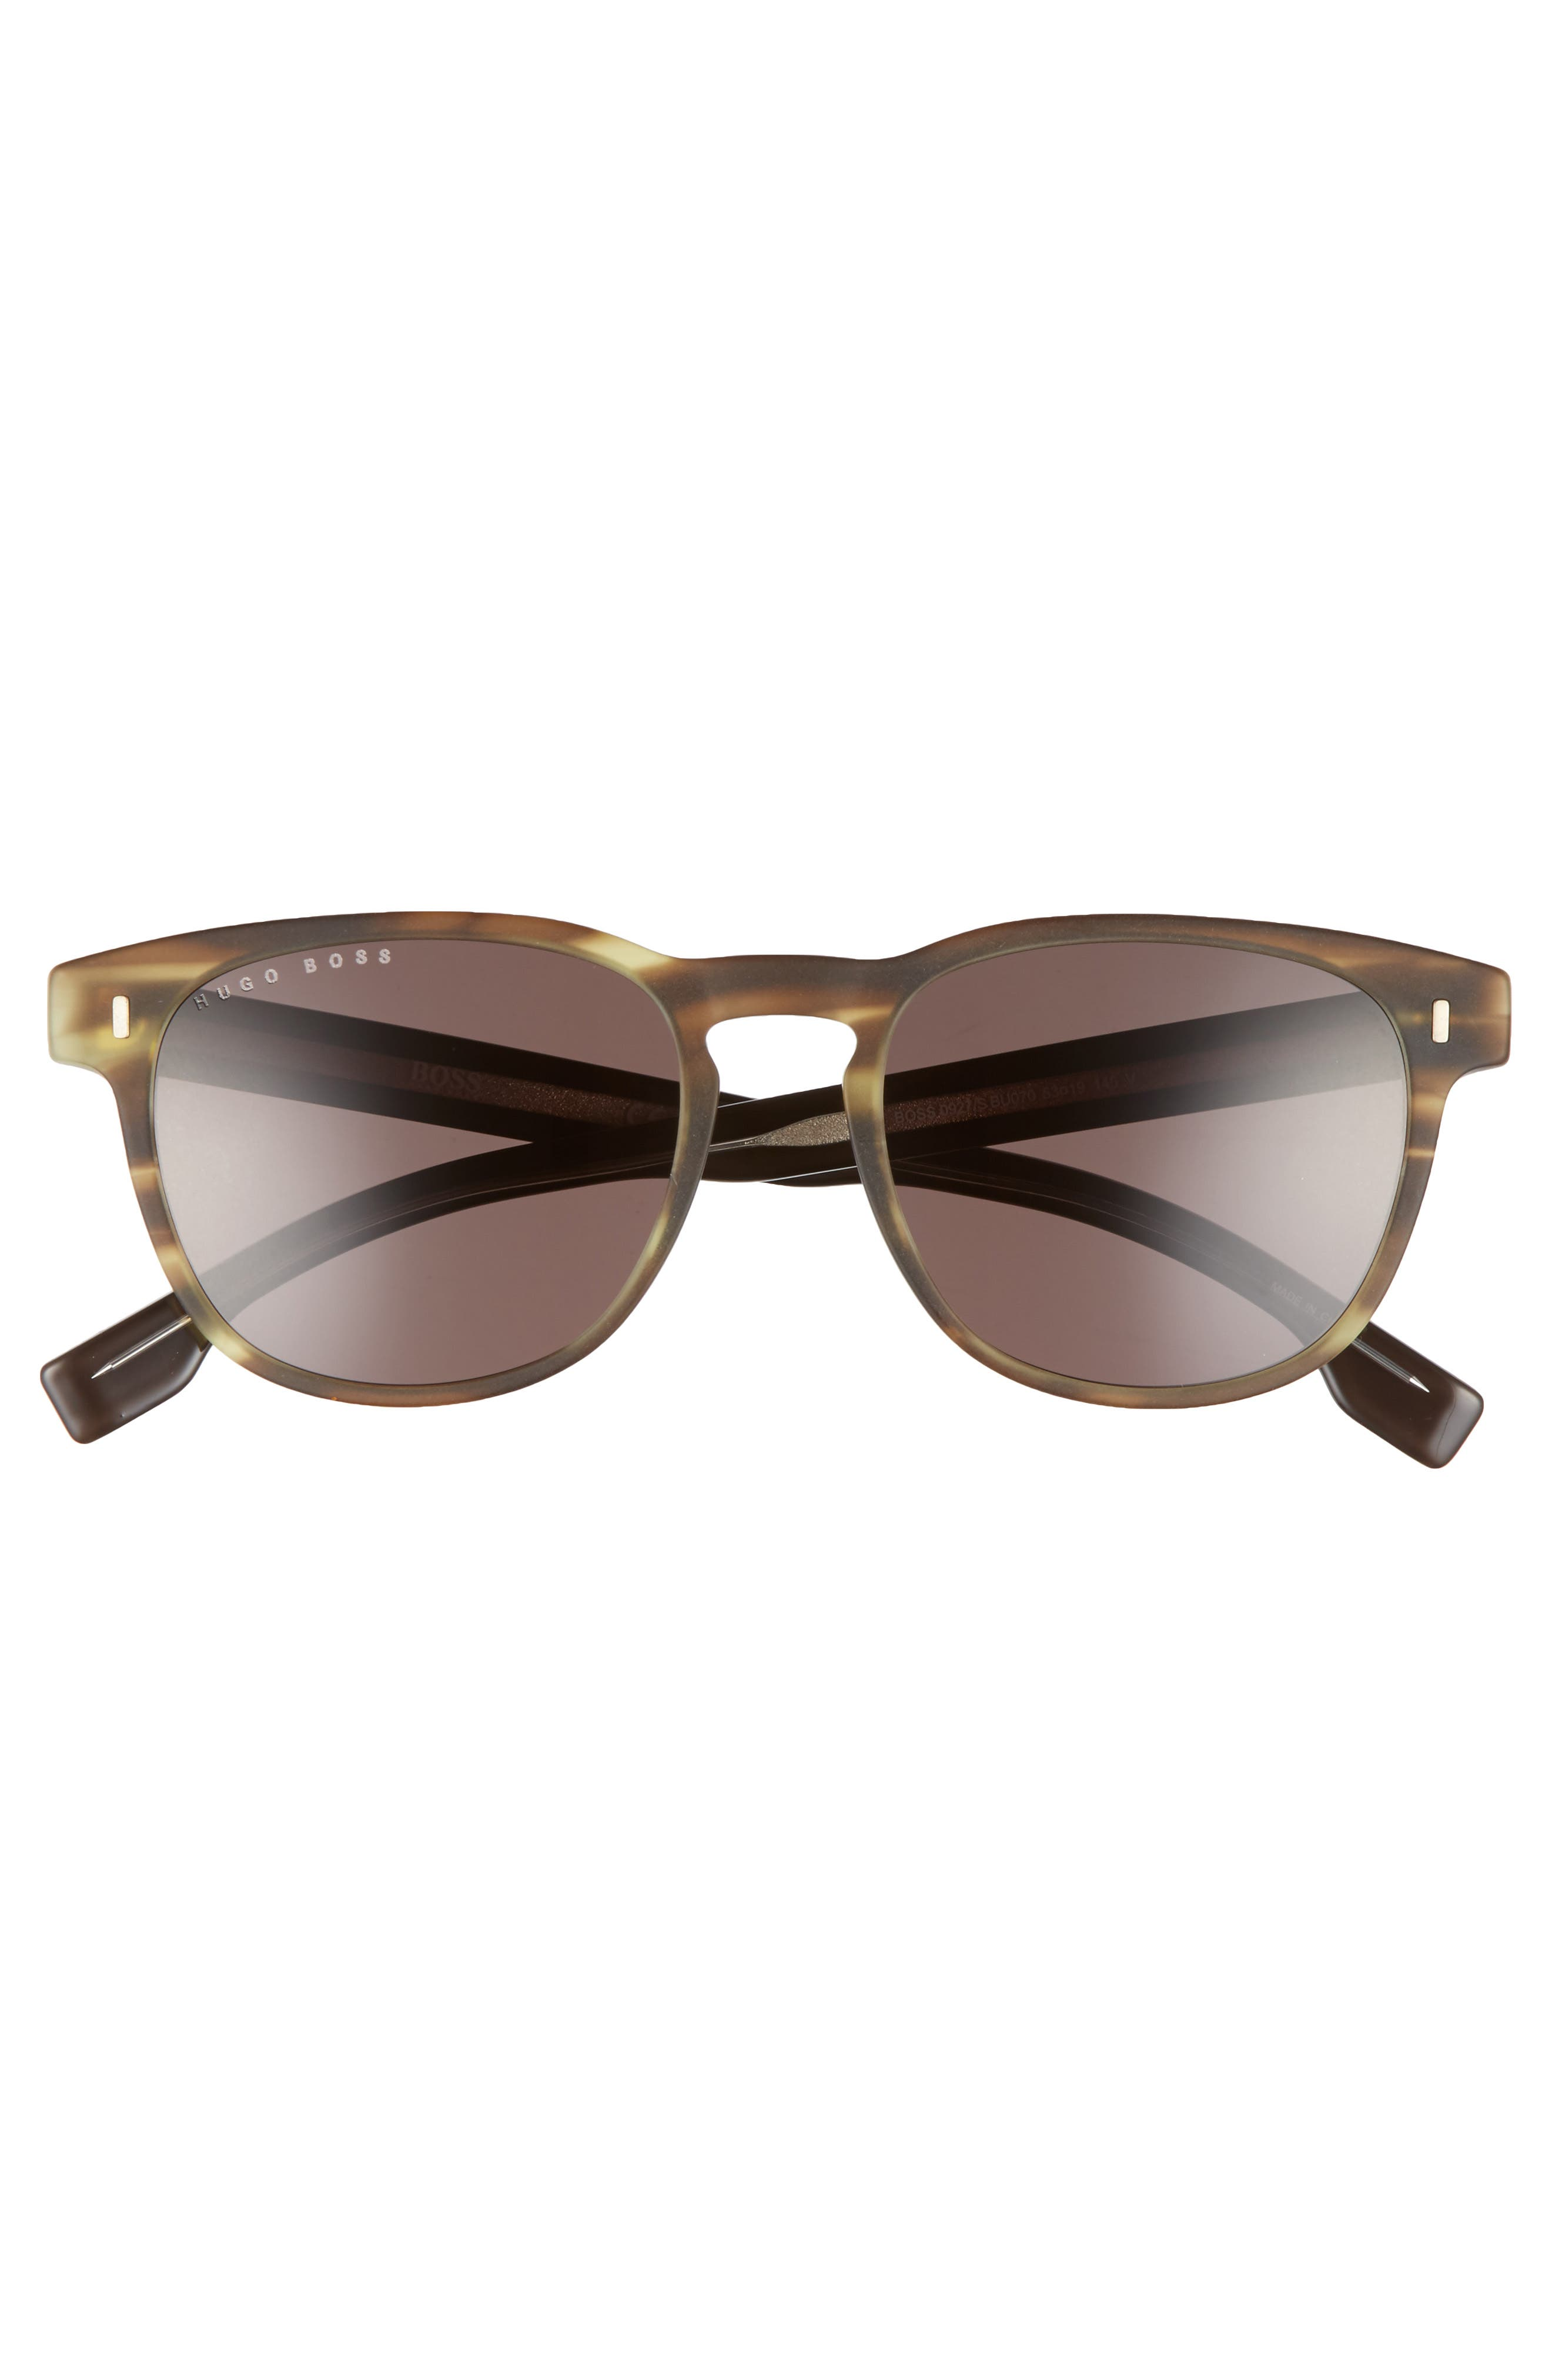 B0926S 49mm Polarized Sunglasses,                             Alternate thumbnail 2, color,                             Brown/ Brown